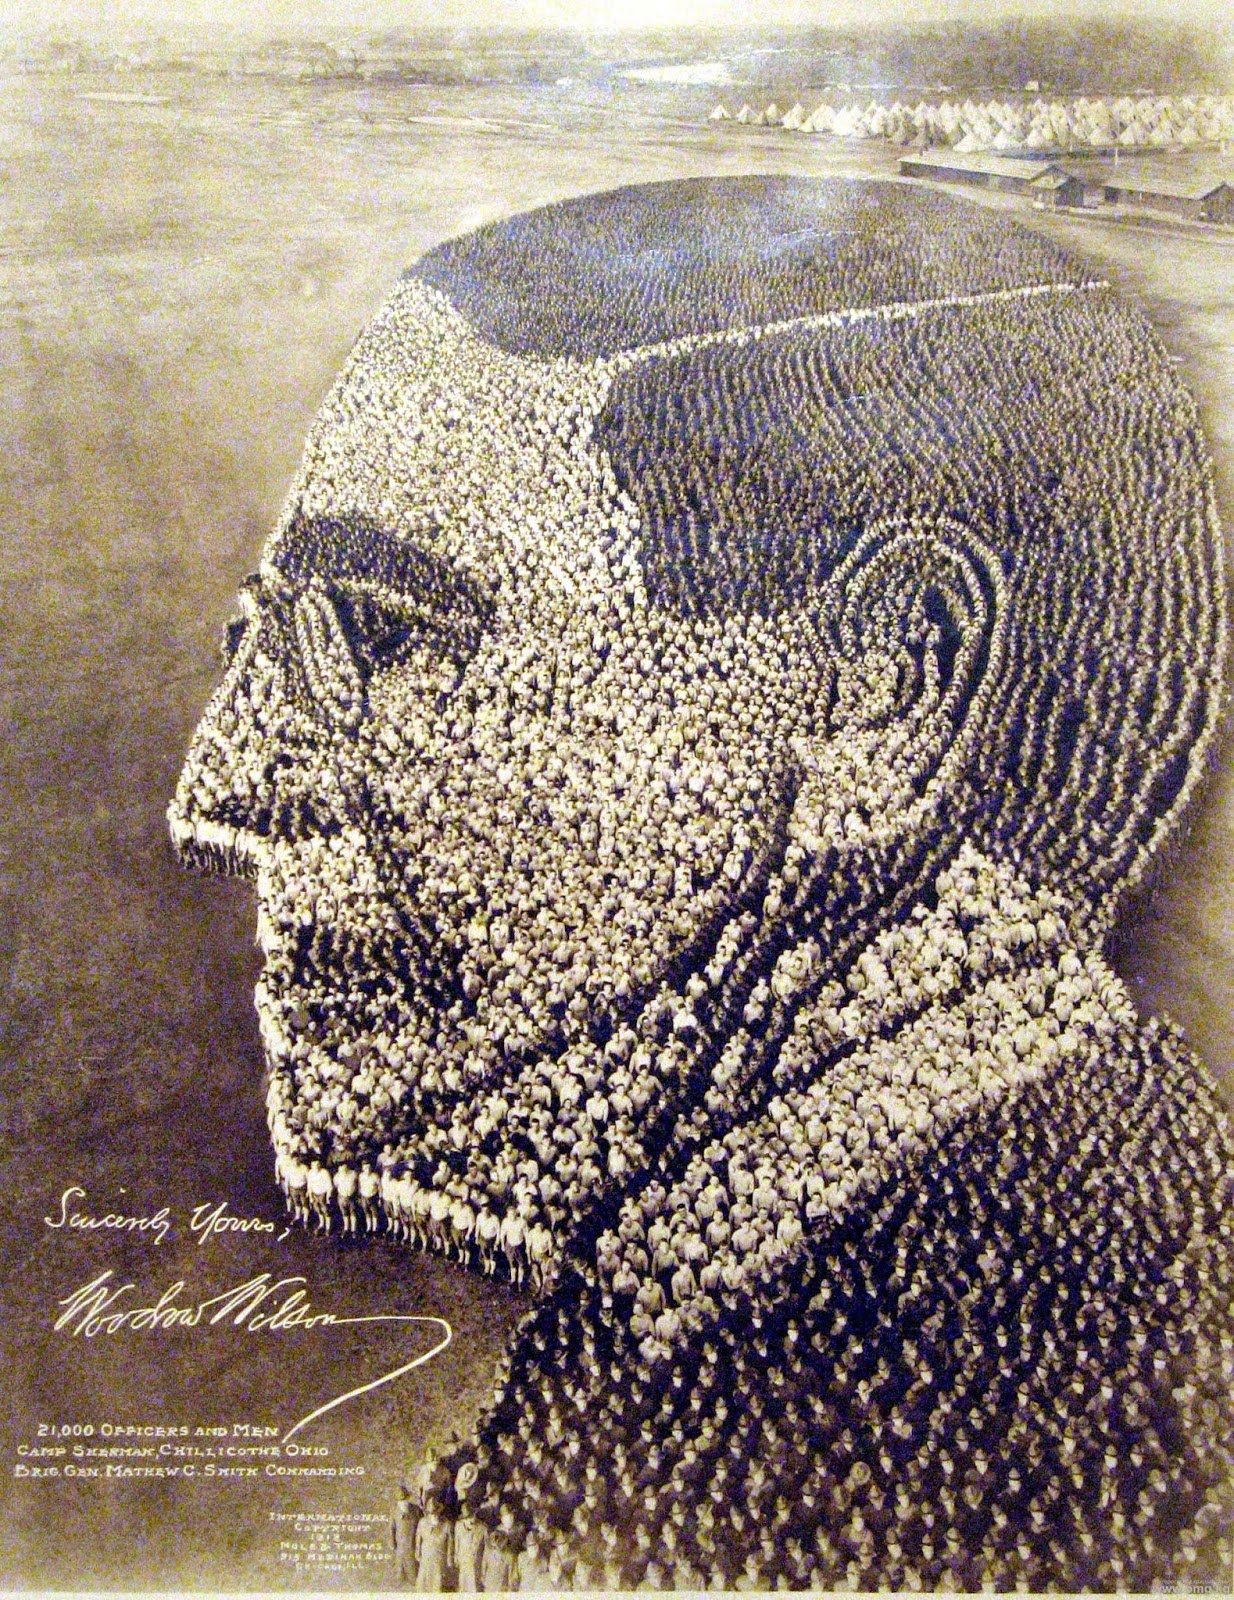 Living Portrait of Woodrow Wilson, 1918, Camp Sherman Ohio, 21,000 officers and men